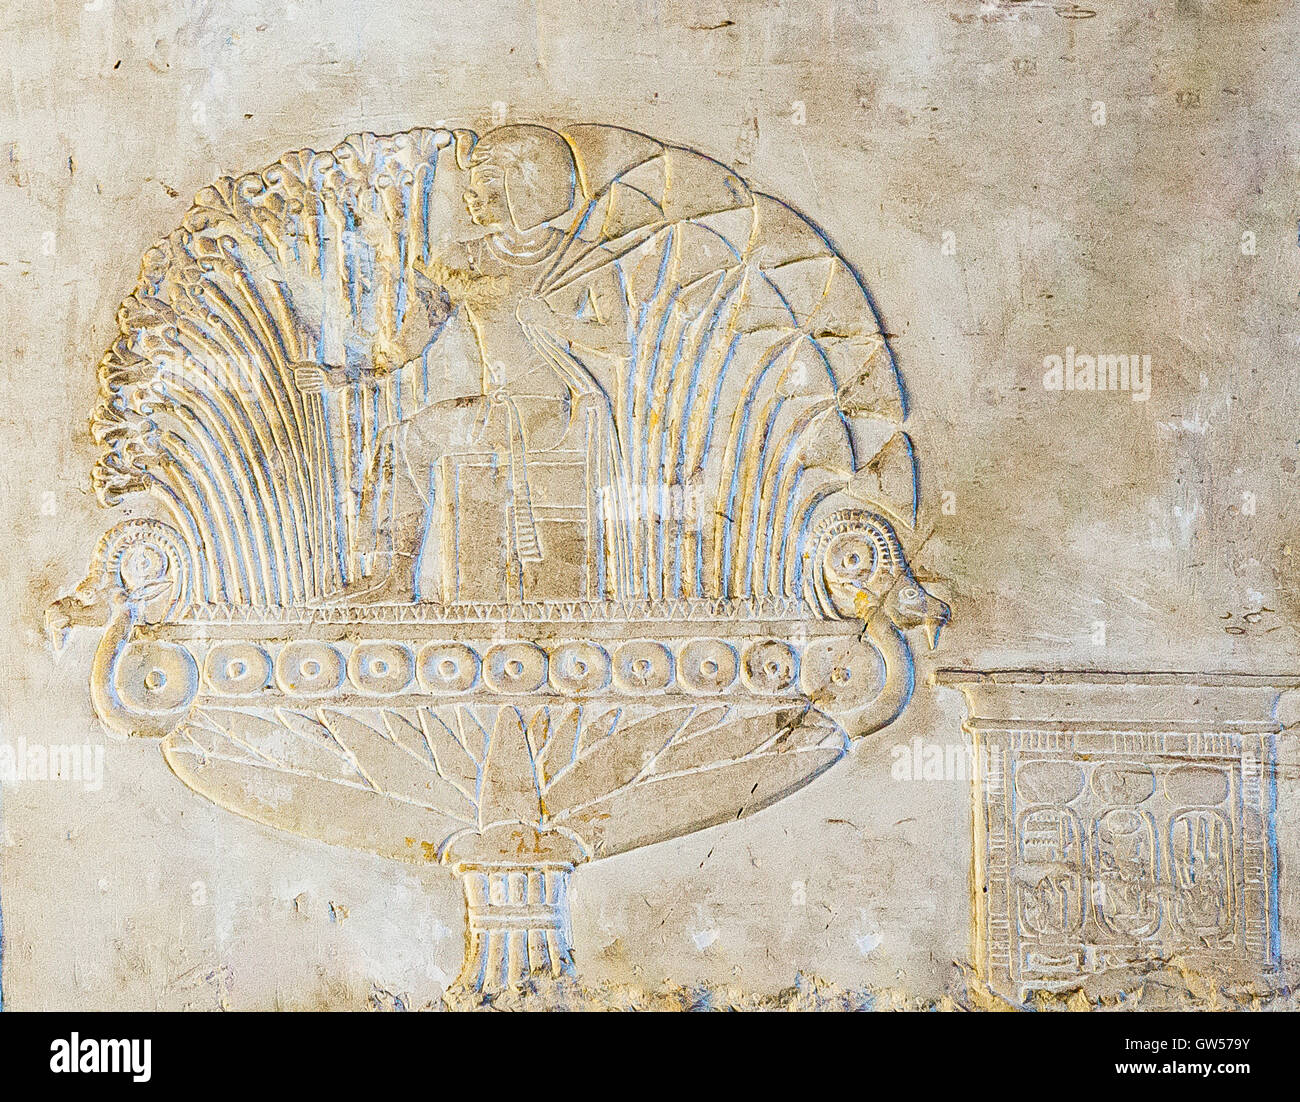 Ancient egypt relief lotus flower stock photos ancient egypt luxor in egypt assassif part of the valley of the nobles tomb izmirmasajfo